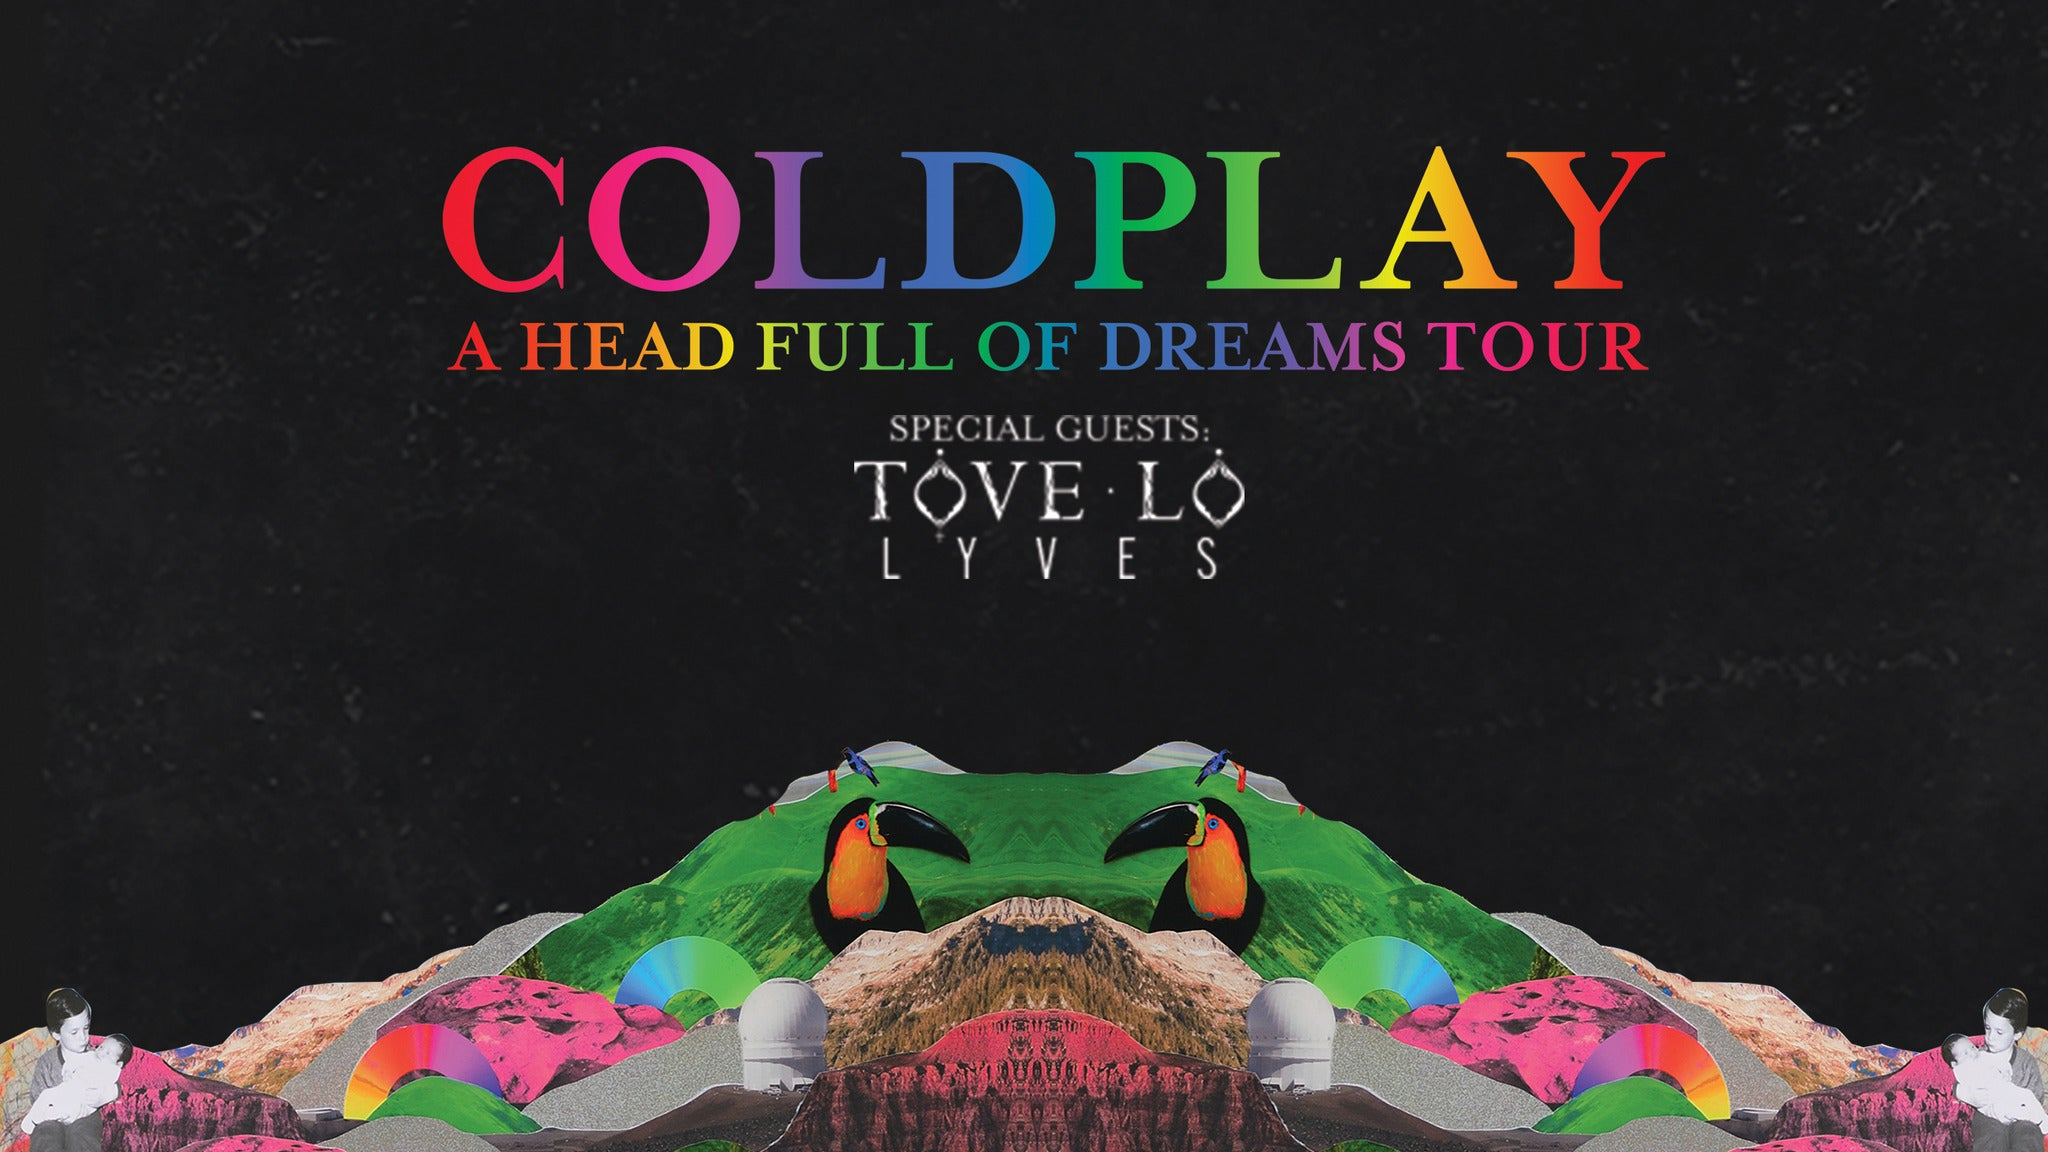 Coldplay:  A Head Full Of Dreams Tour at Rose Bowl